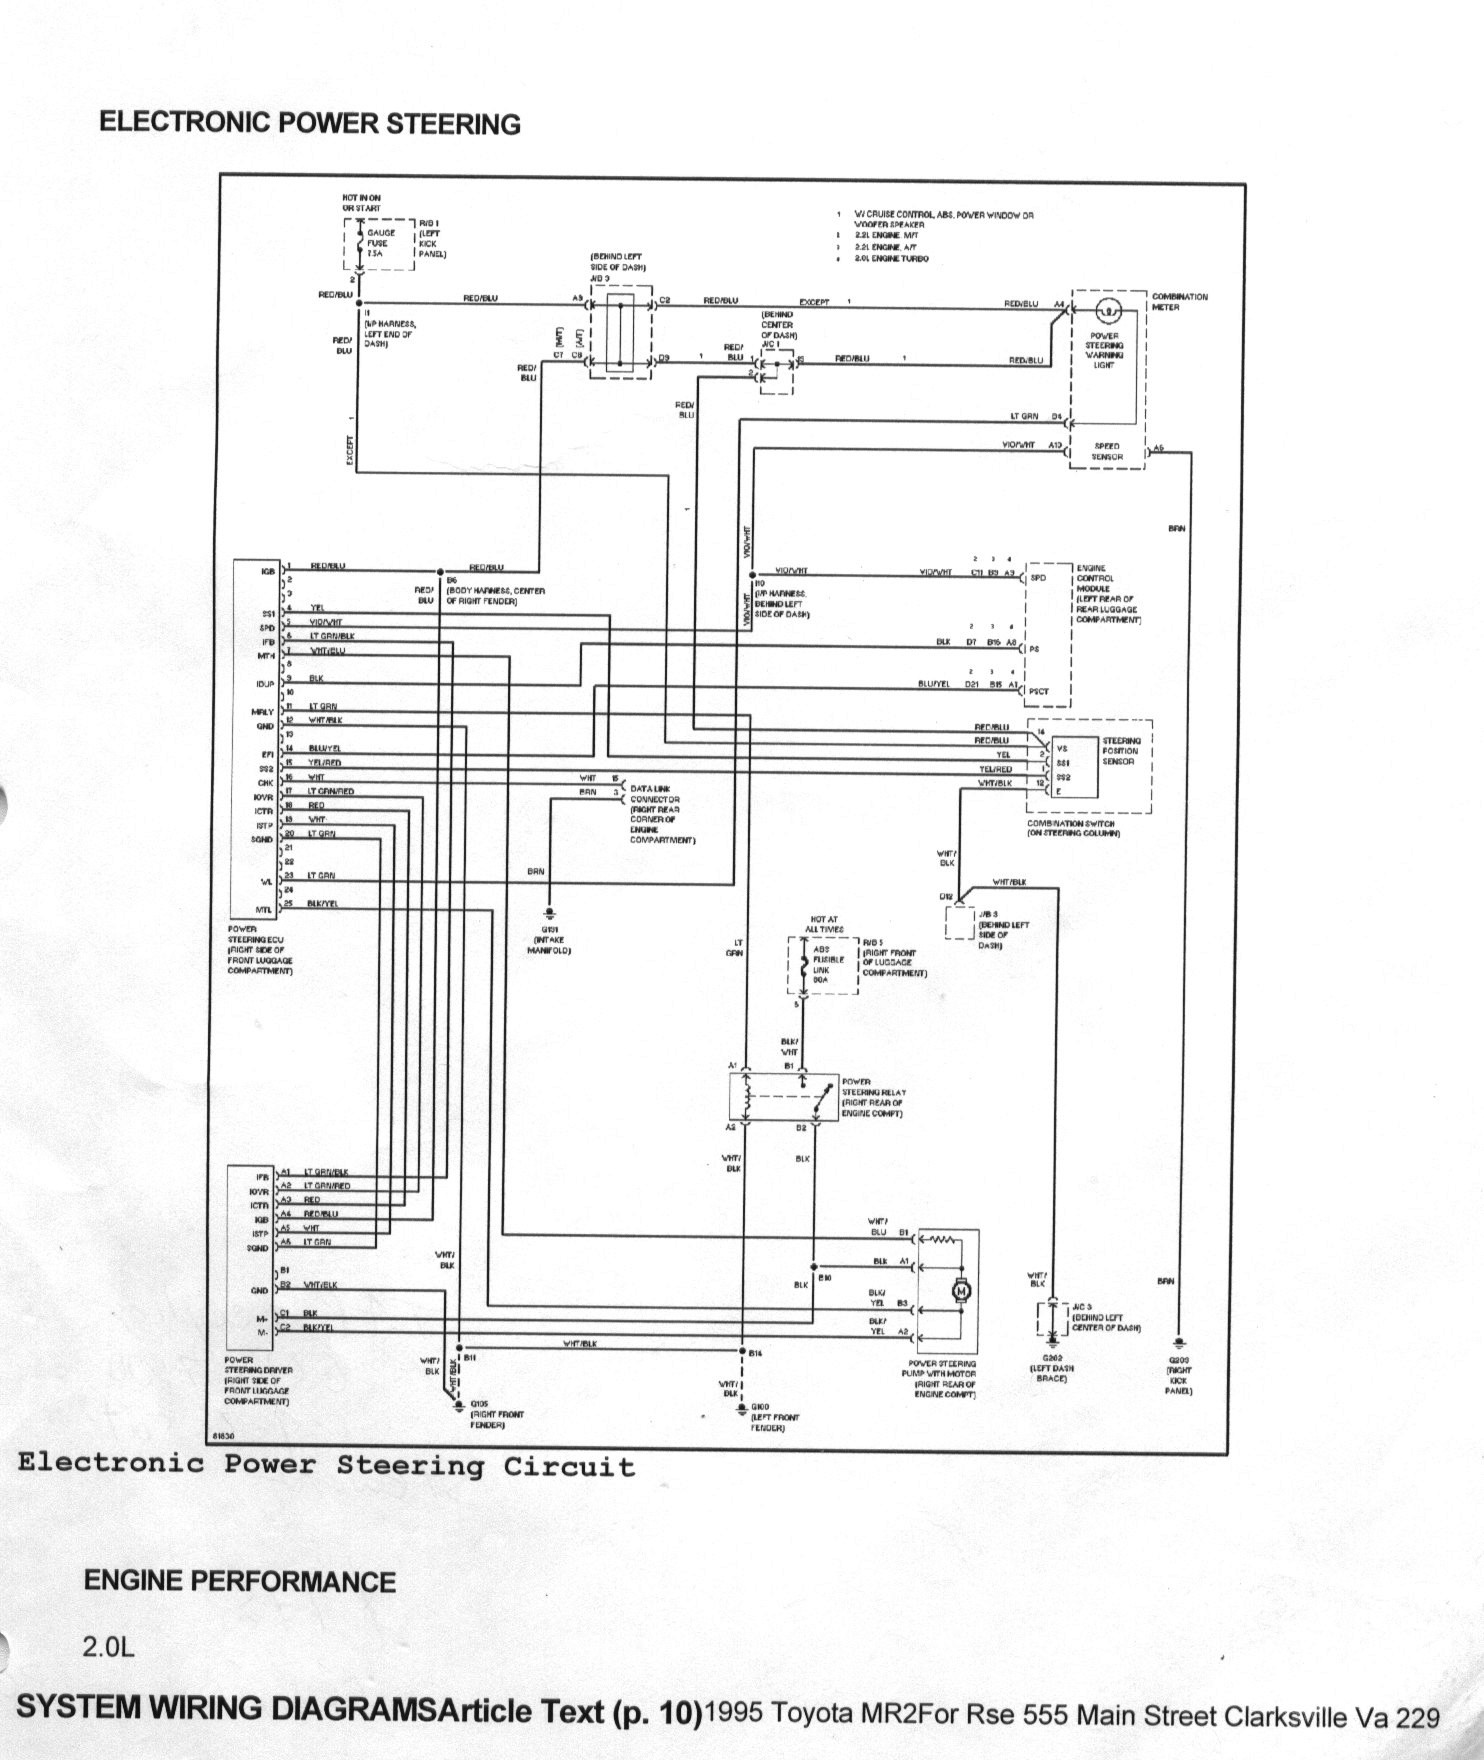 system wiring diagrams toyota word triangle diagram mr2 power steering